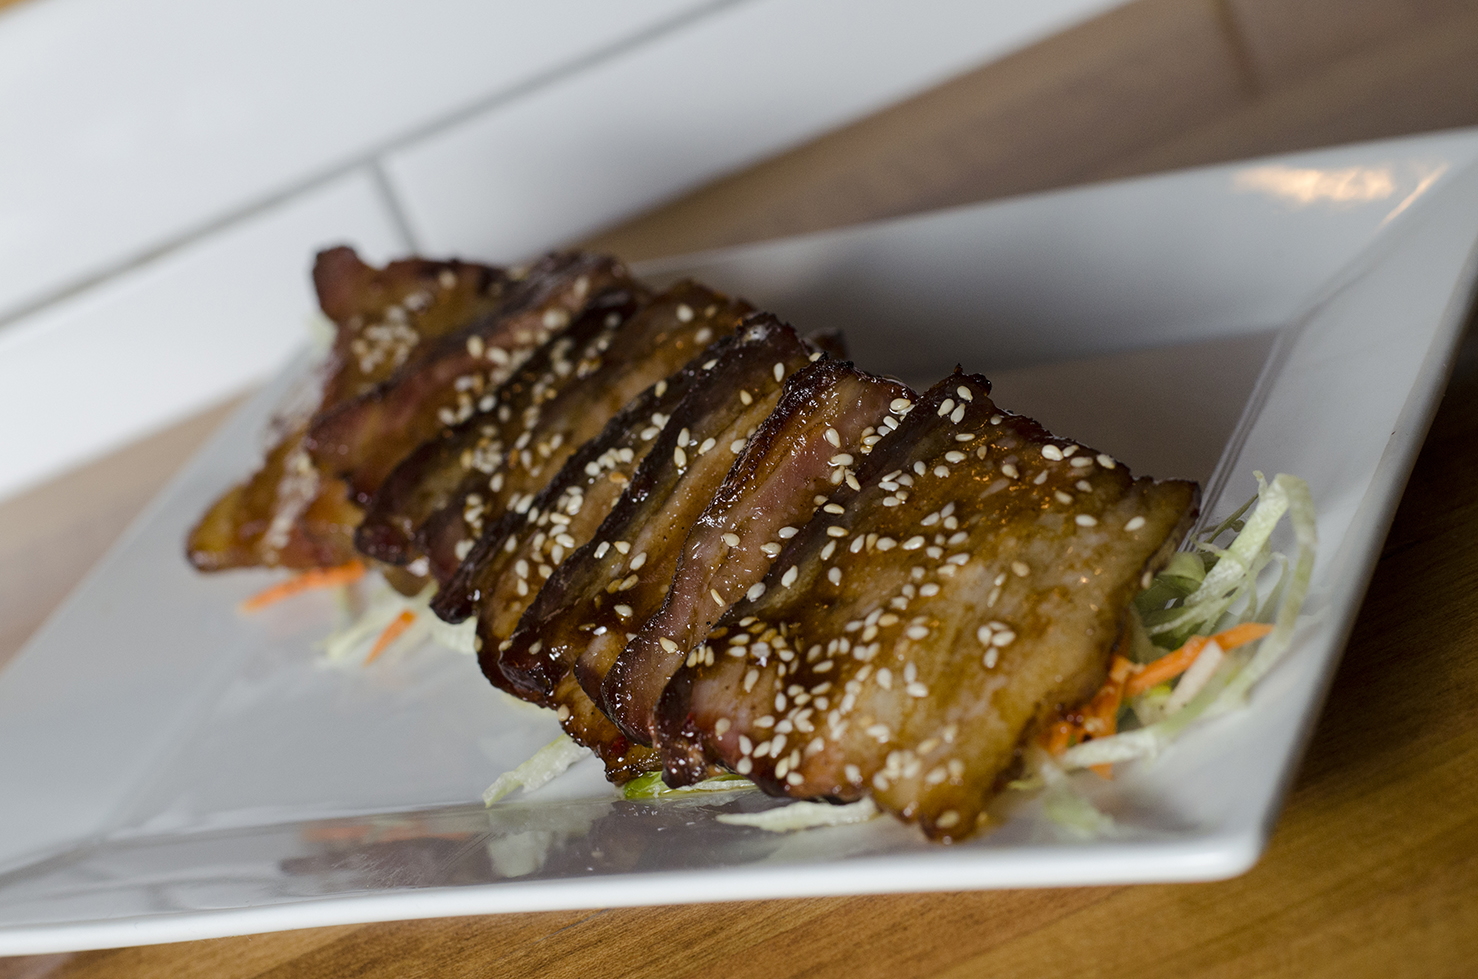 Chef Ted Dimoglou makes one heck of a pork belly.